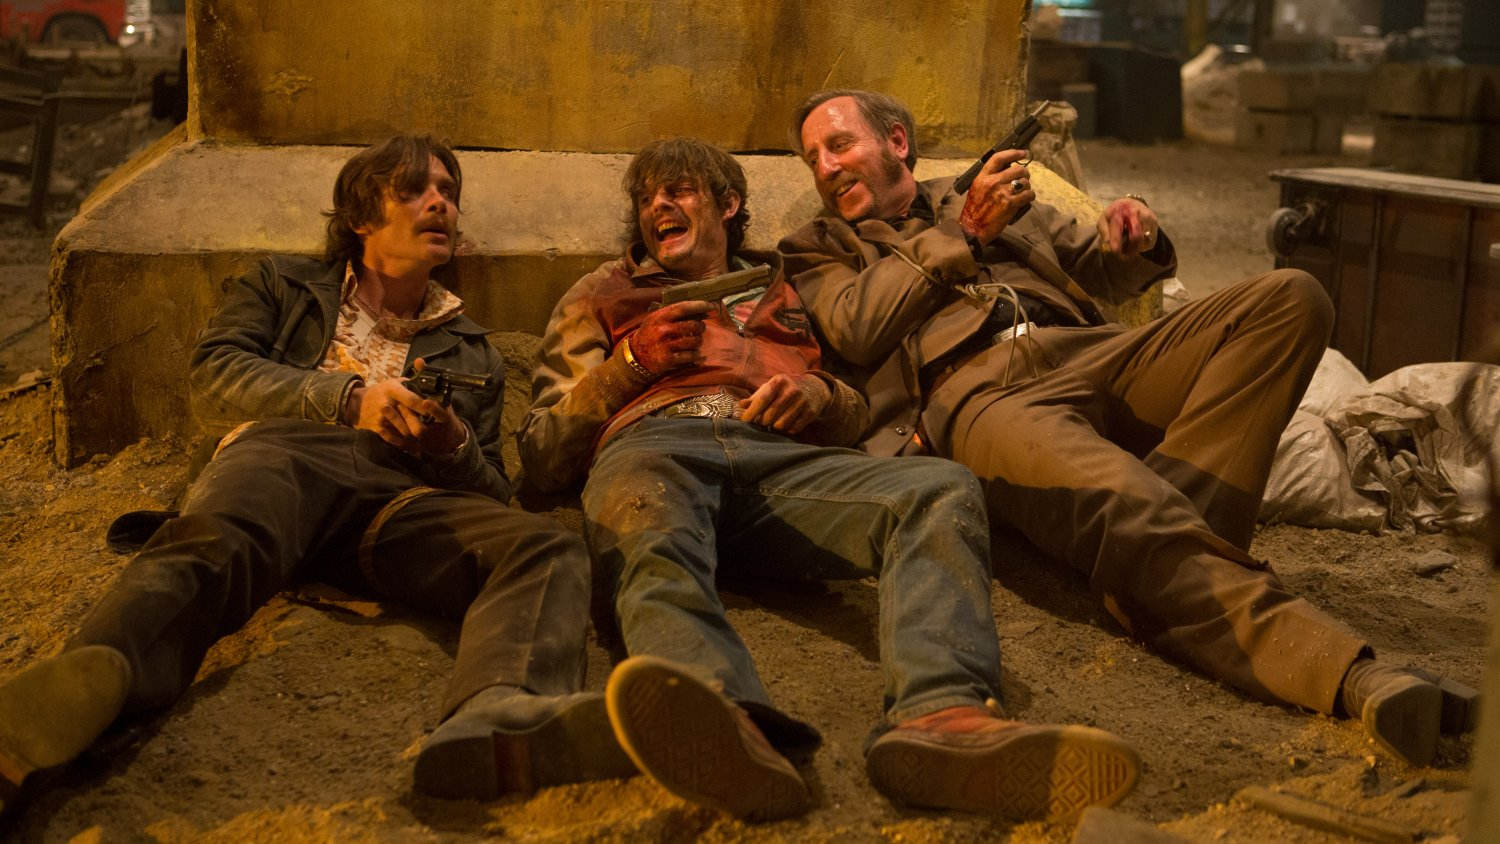 Free Fire image 8